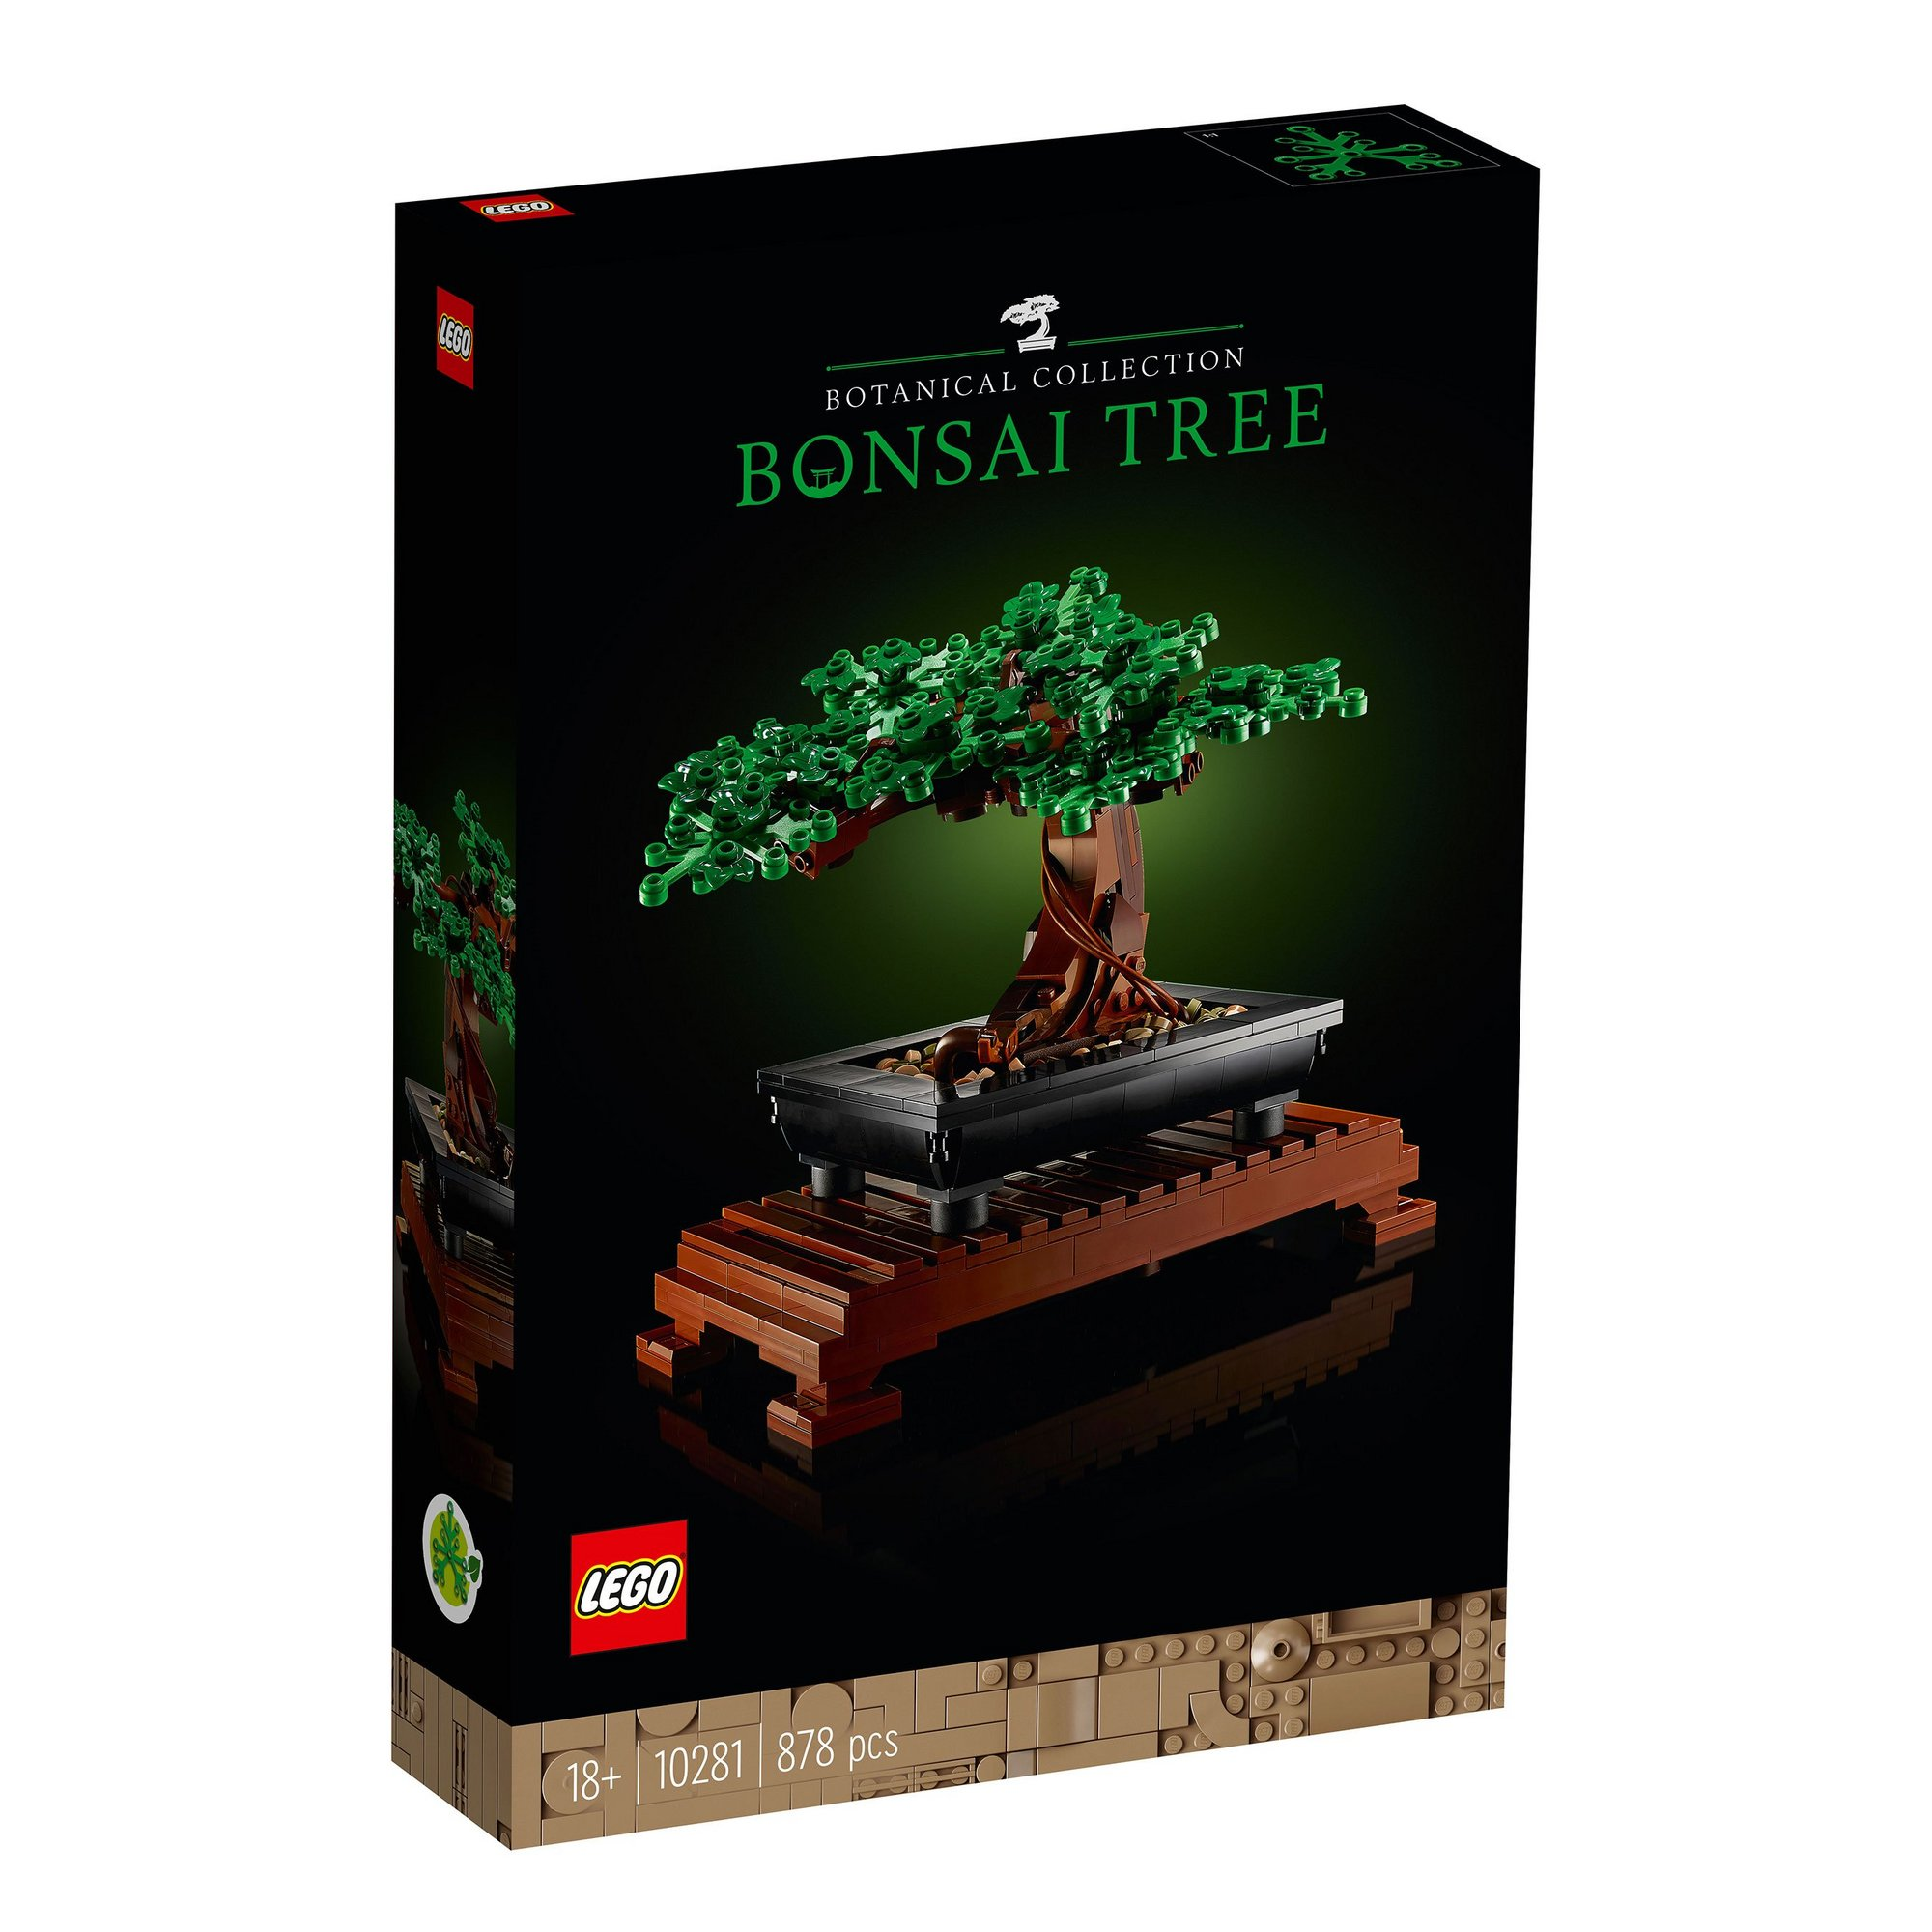 Image of LEGO Creator Expert Bonsai Tree